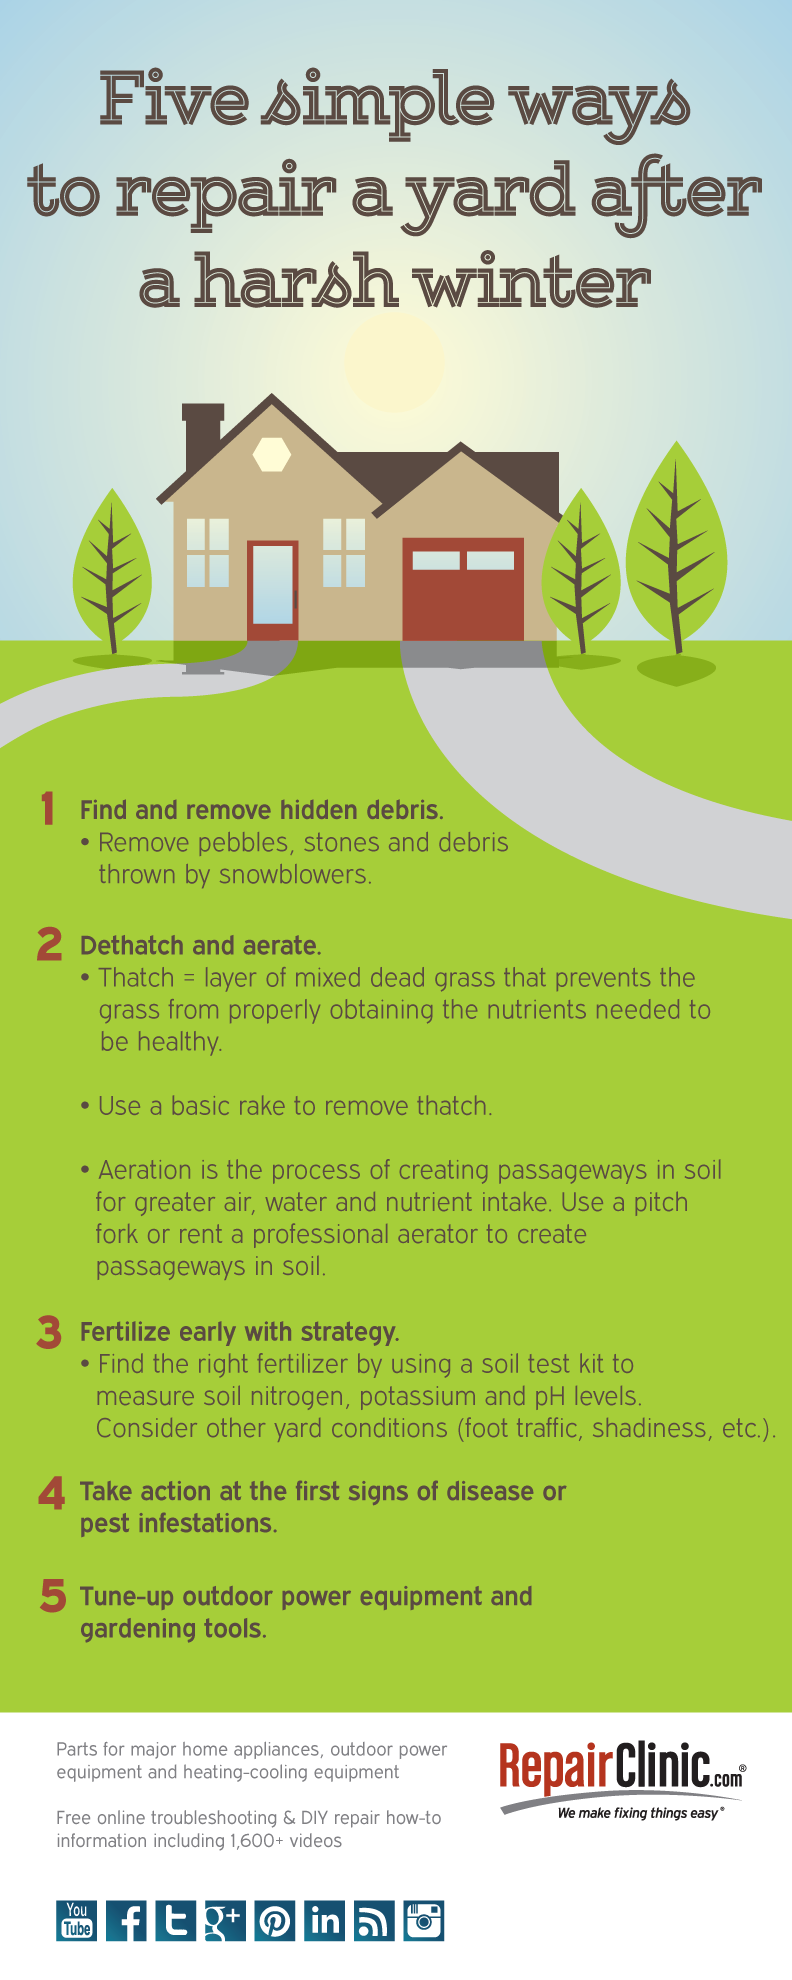 Five Simple Ways To Repair A Yard After A Harsh Winter Lawn Care Business Repair Clinic Pergola Pictures